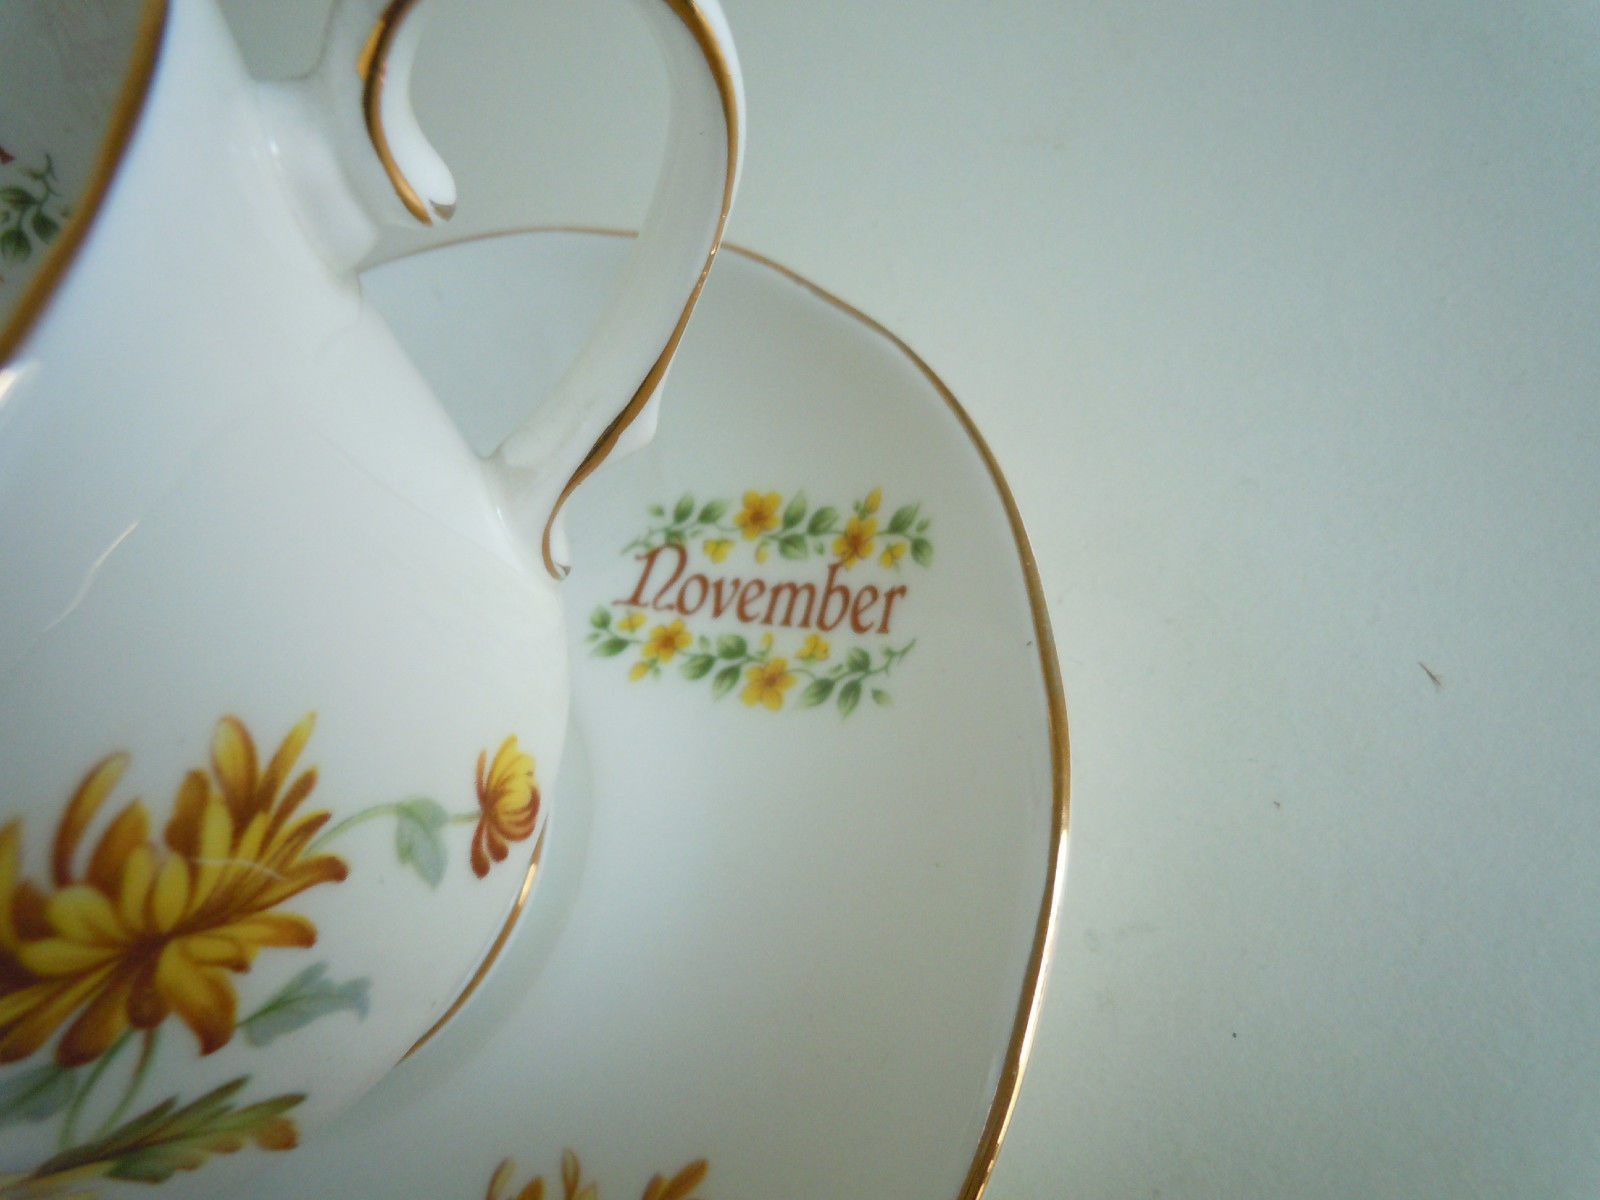 Duchess Flower of The Month November Cup and Saucer Set image 2